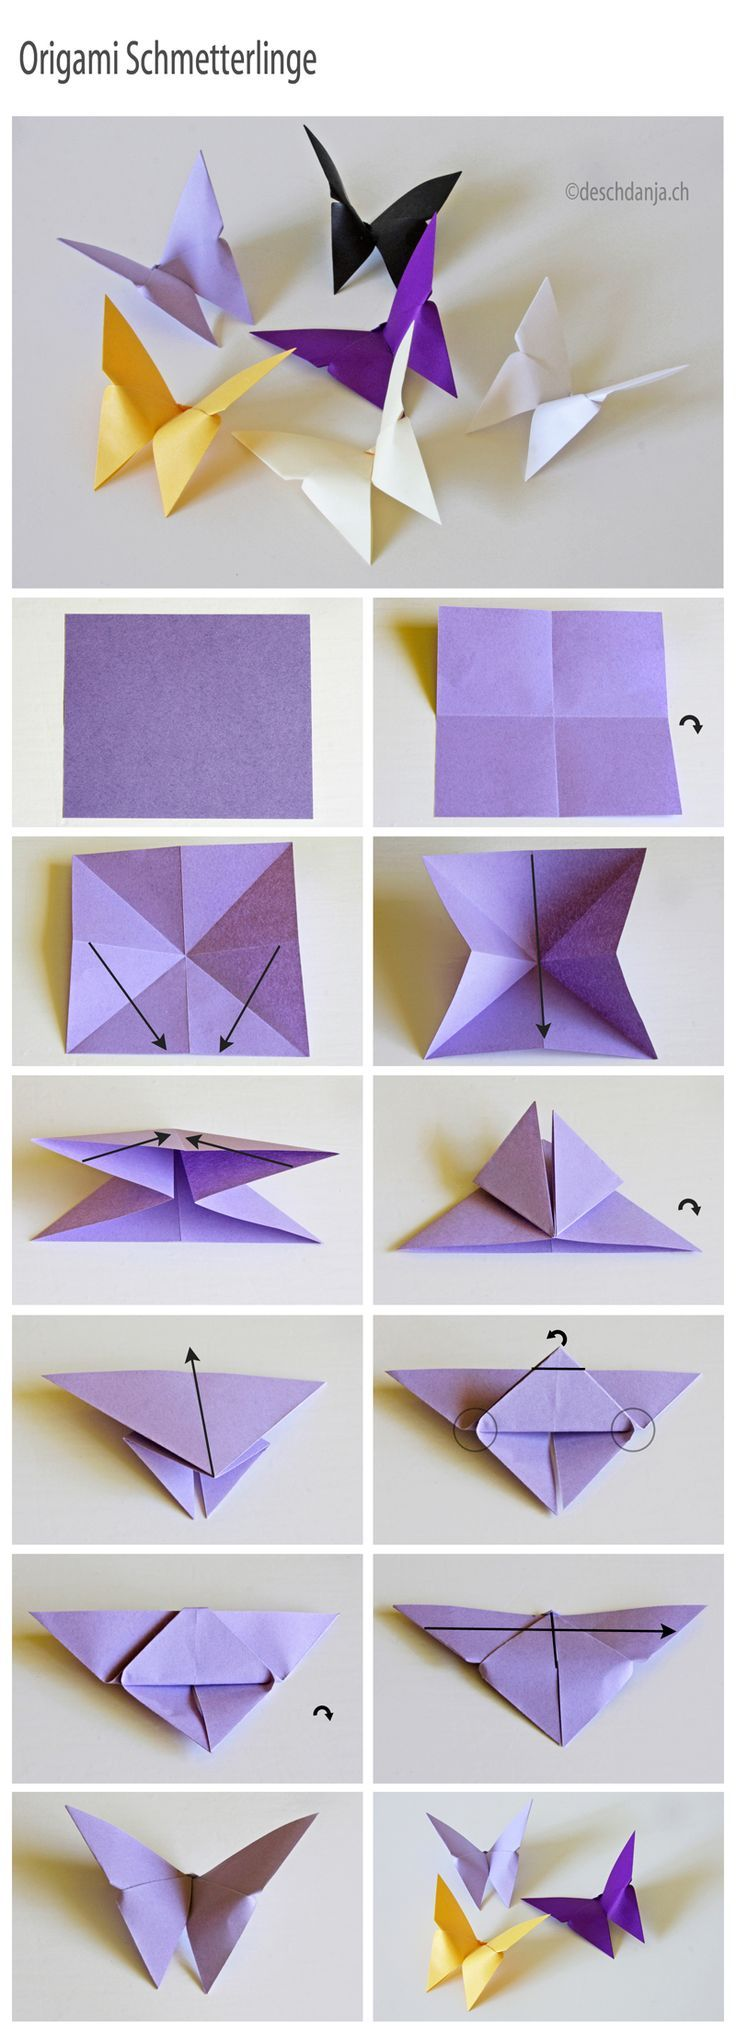 Paper Craft Ideas For Kids Make Easy Paper Craft Projects You Can ...